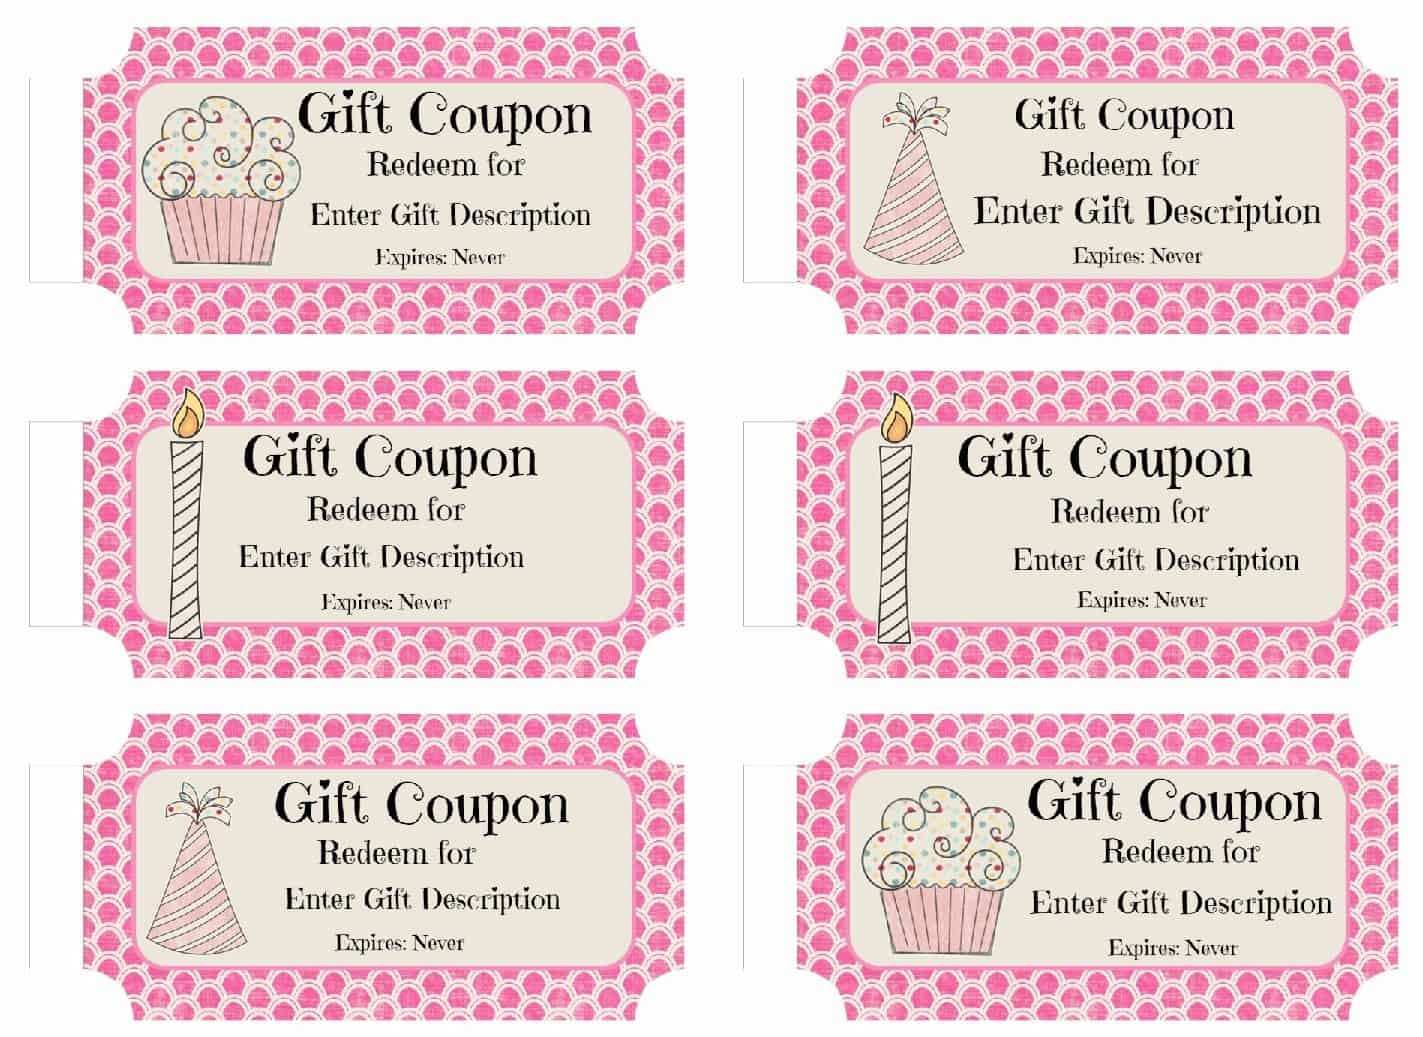 Free Custom Birthday Coupons - Customize Online & Print At Home - Create Your Own Coupon Free Printable